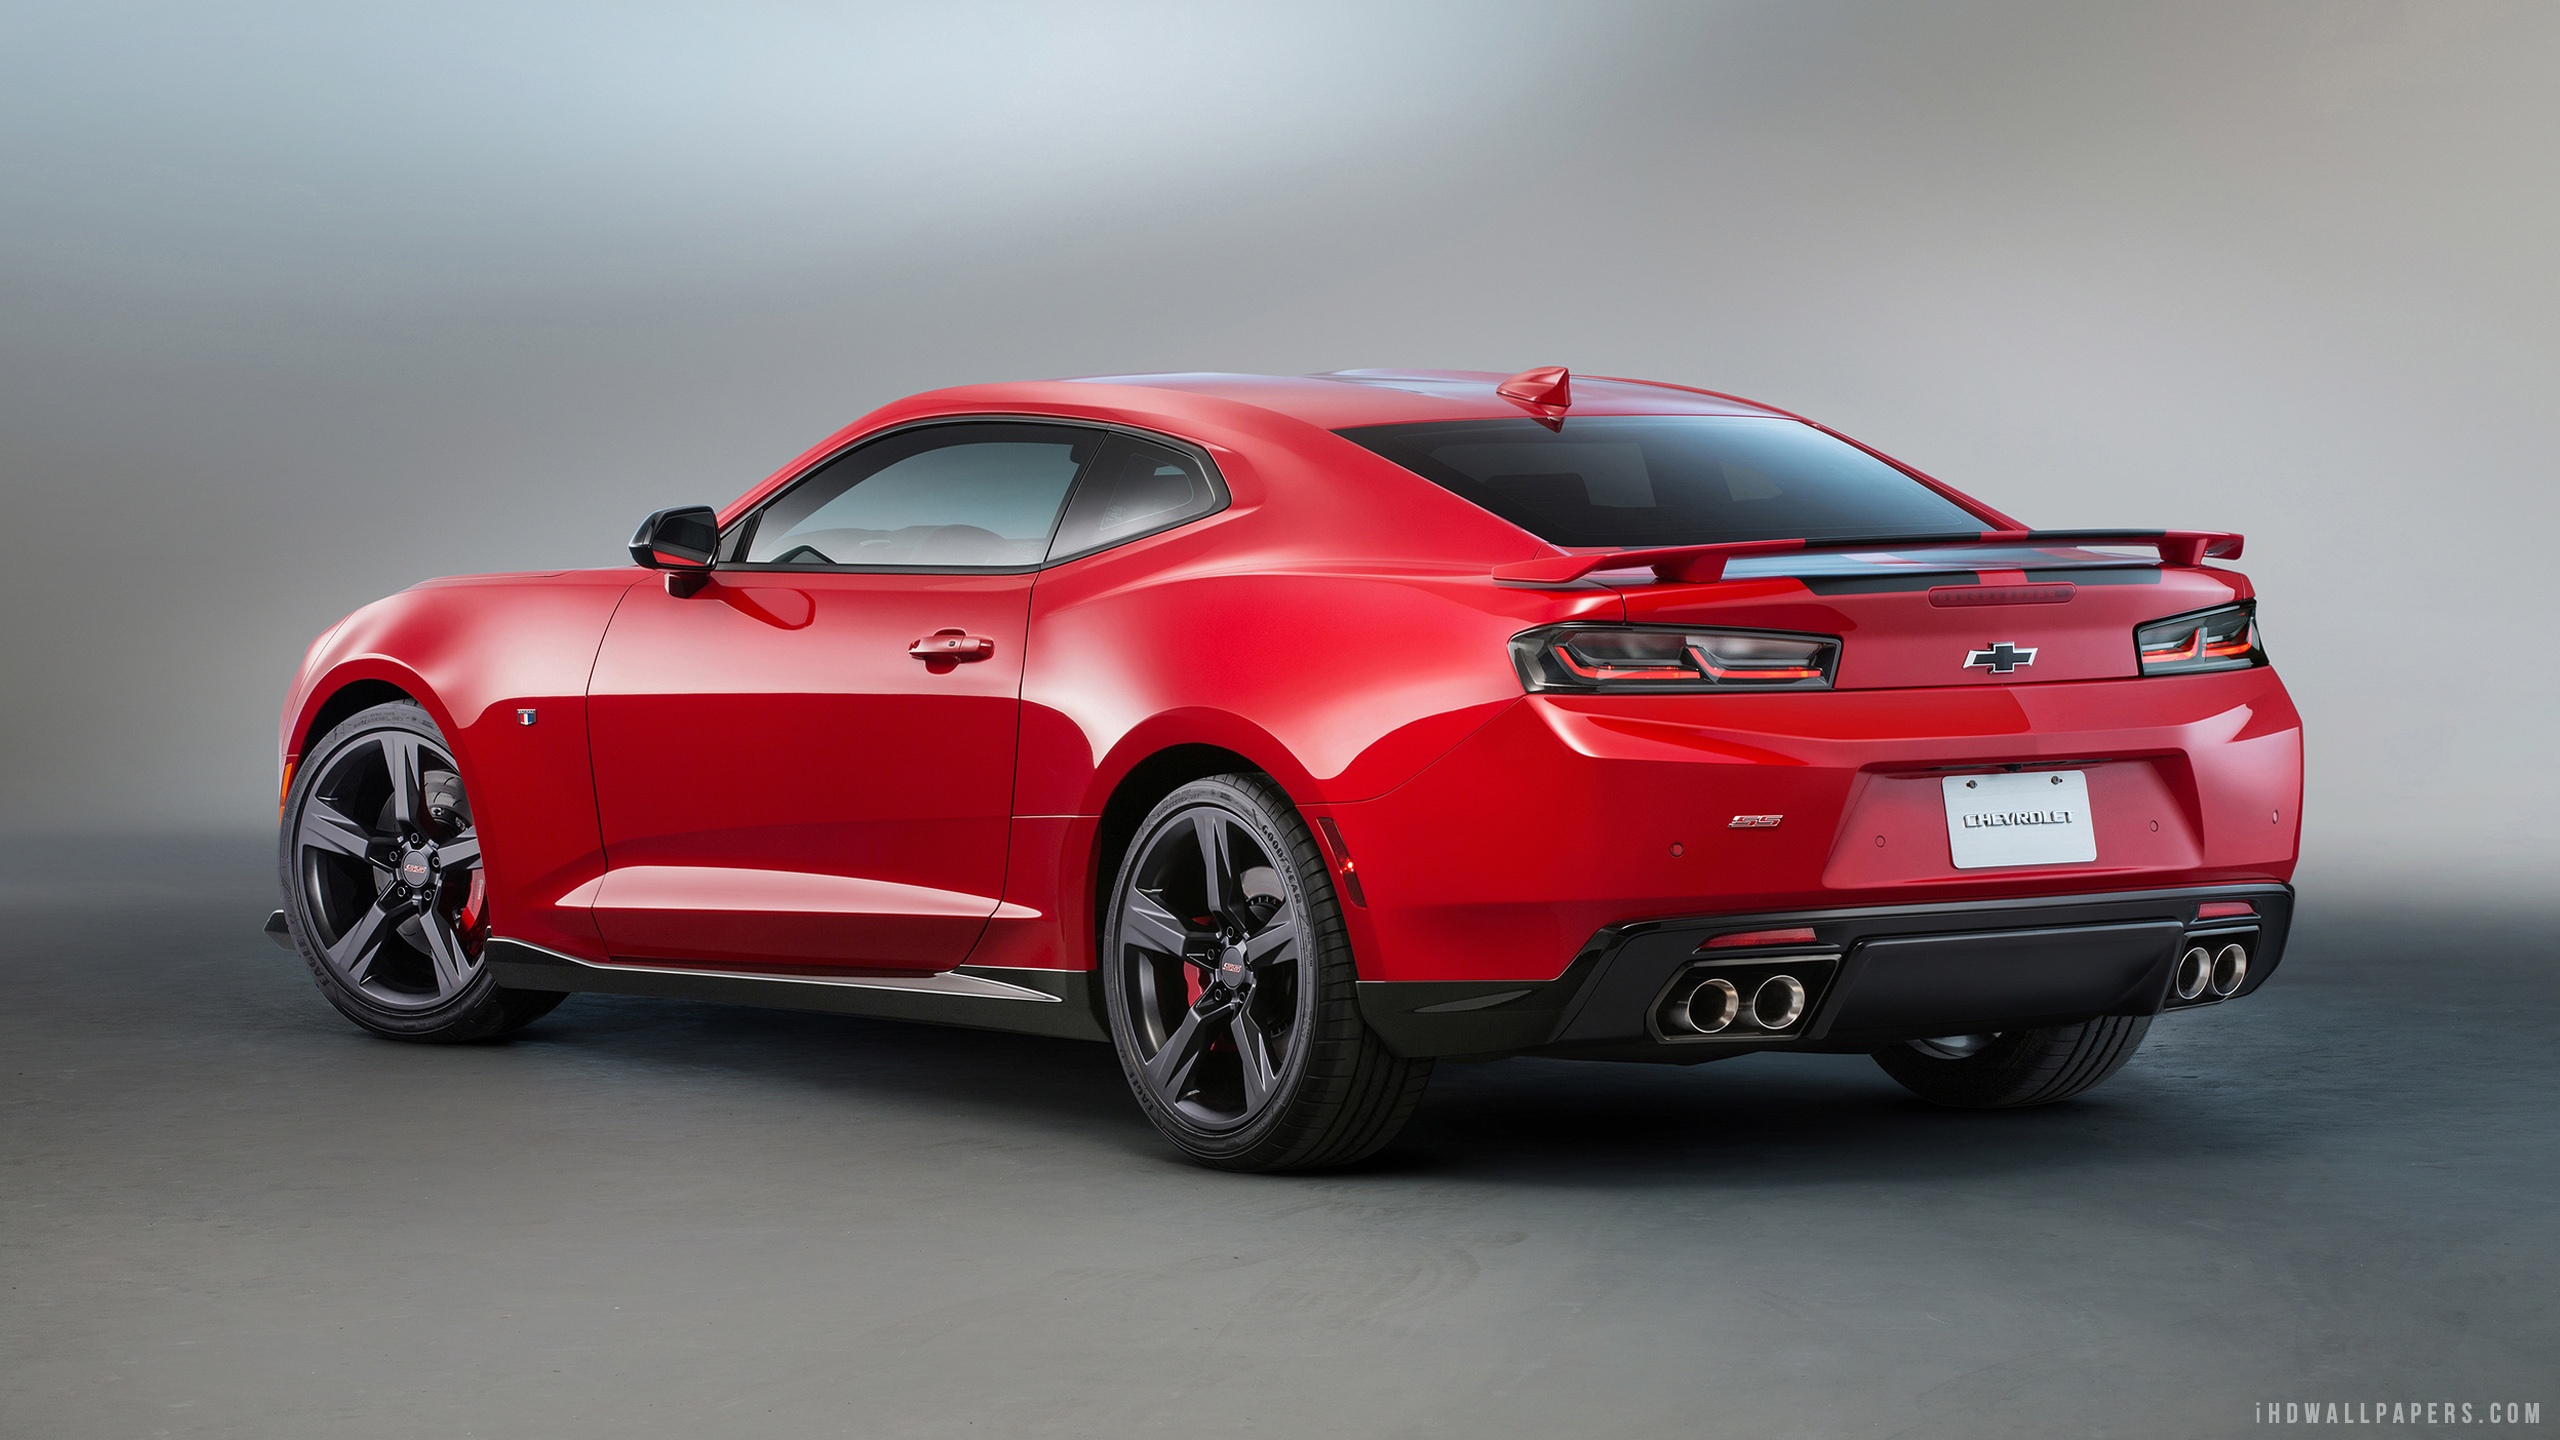 2016 Chevy Camaro Red and Black Accent HD Wallpaper   iHD Wallpapers 2560x1440